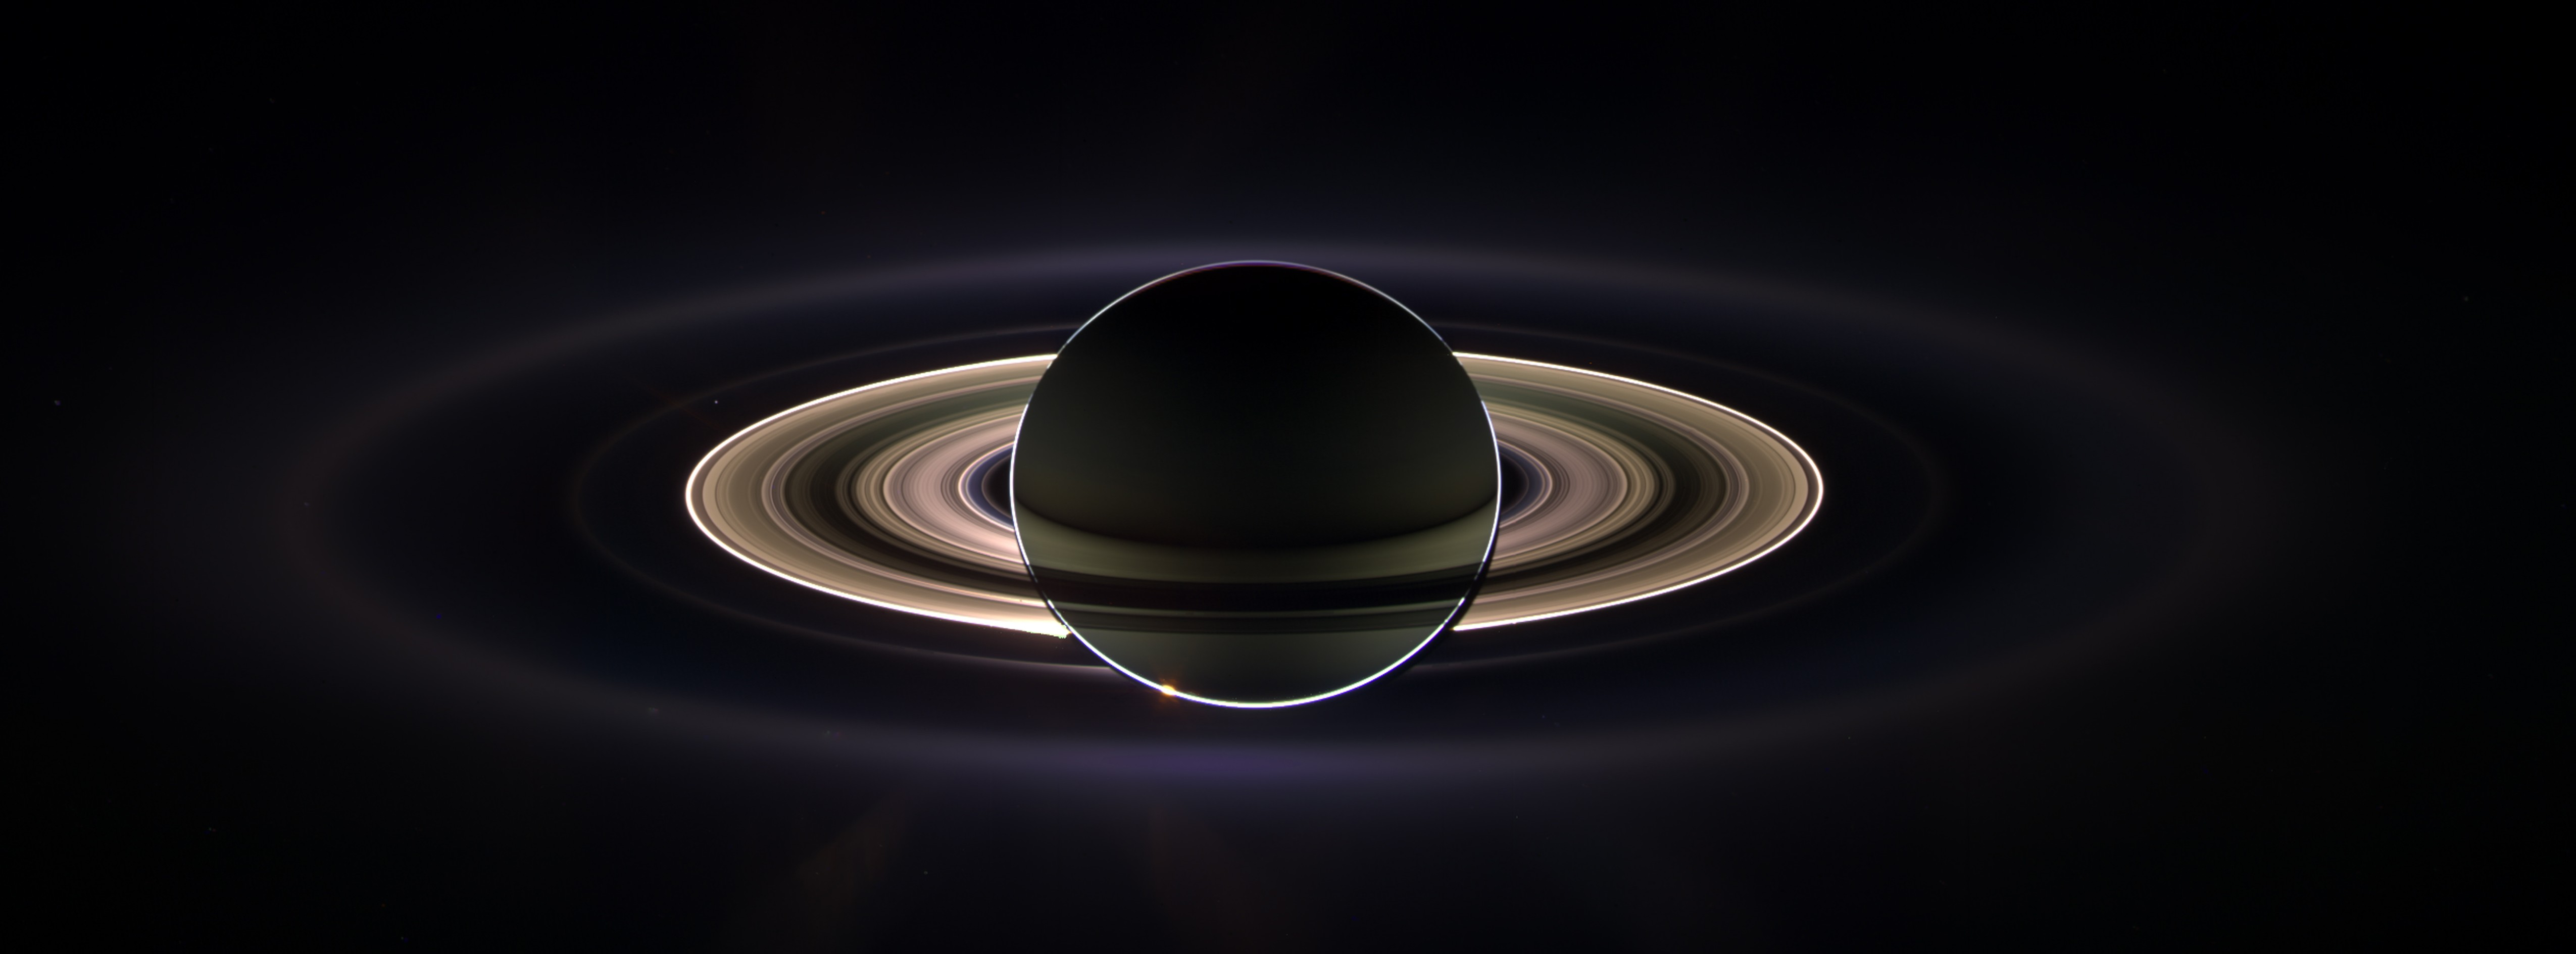 View of Saturn's rings as they surround the planet.